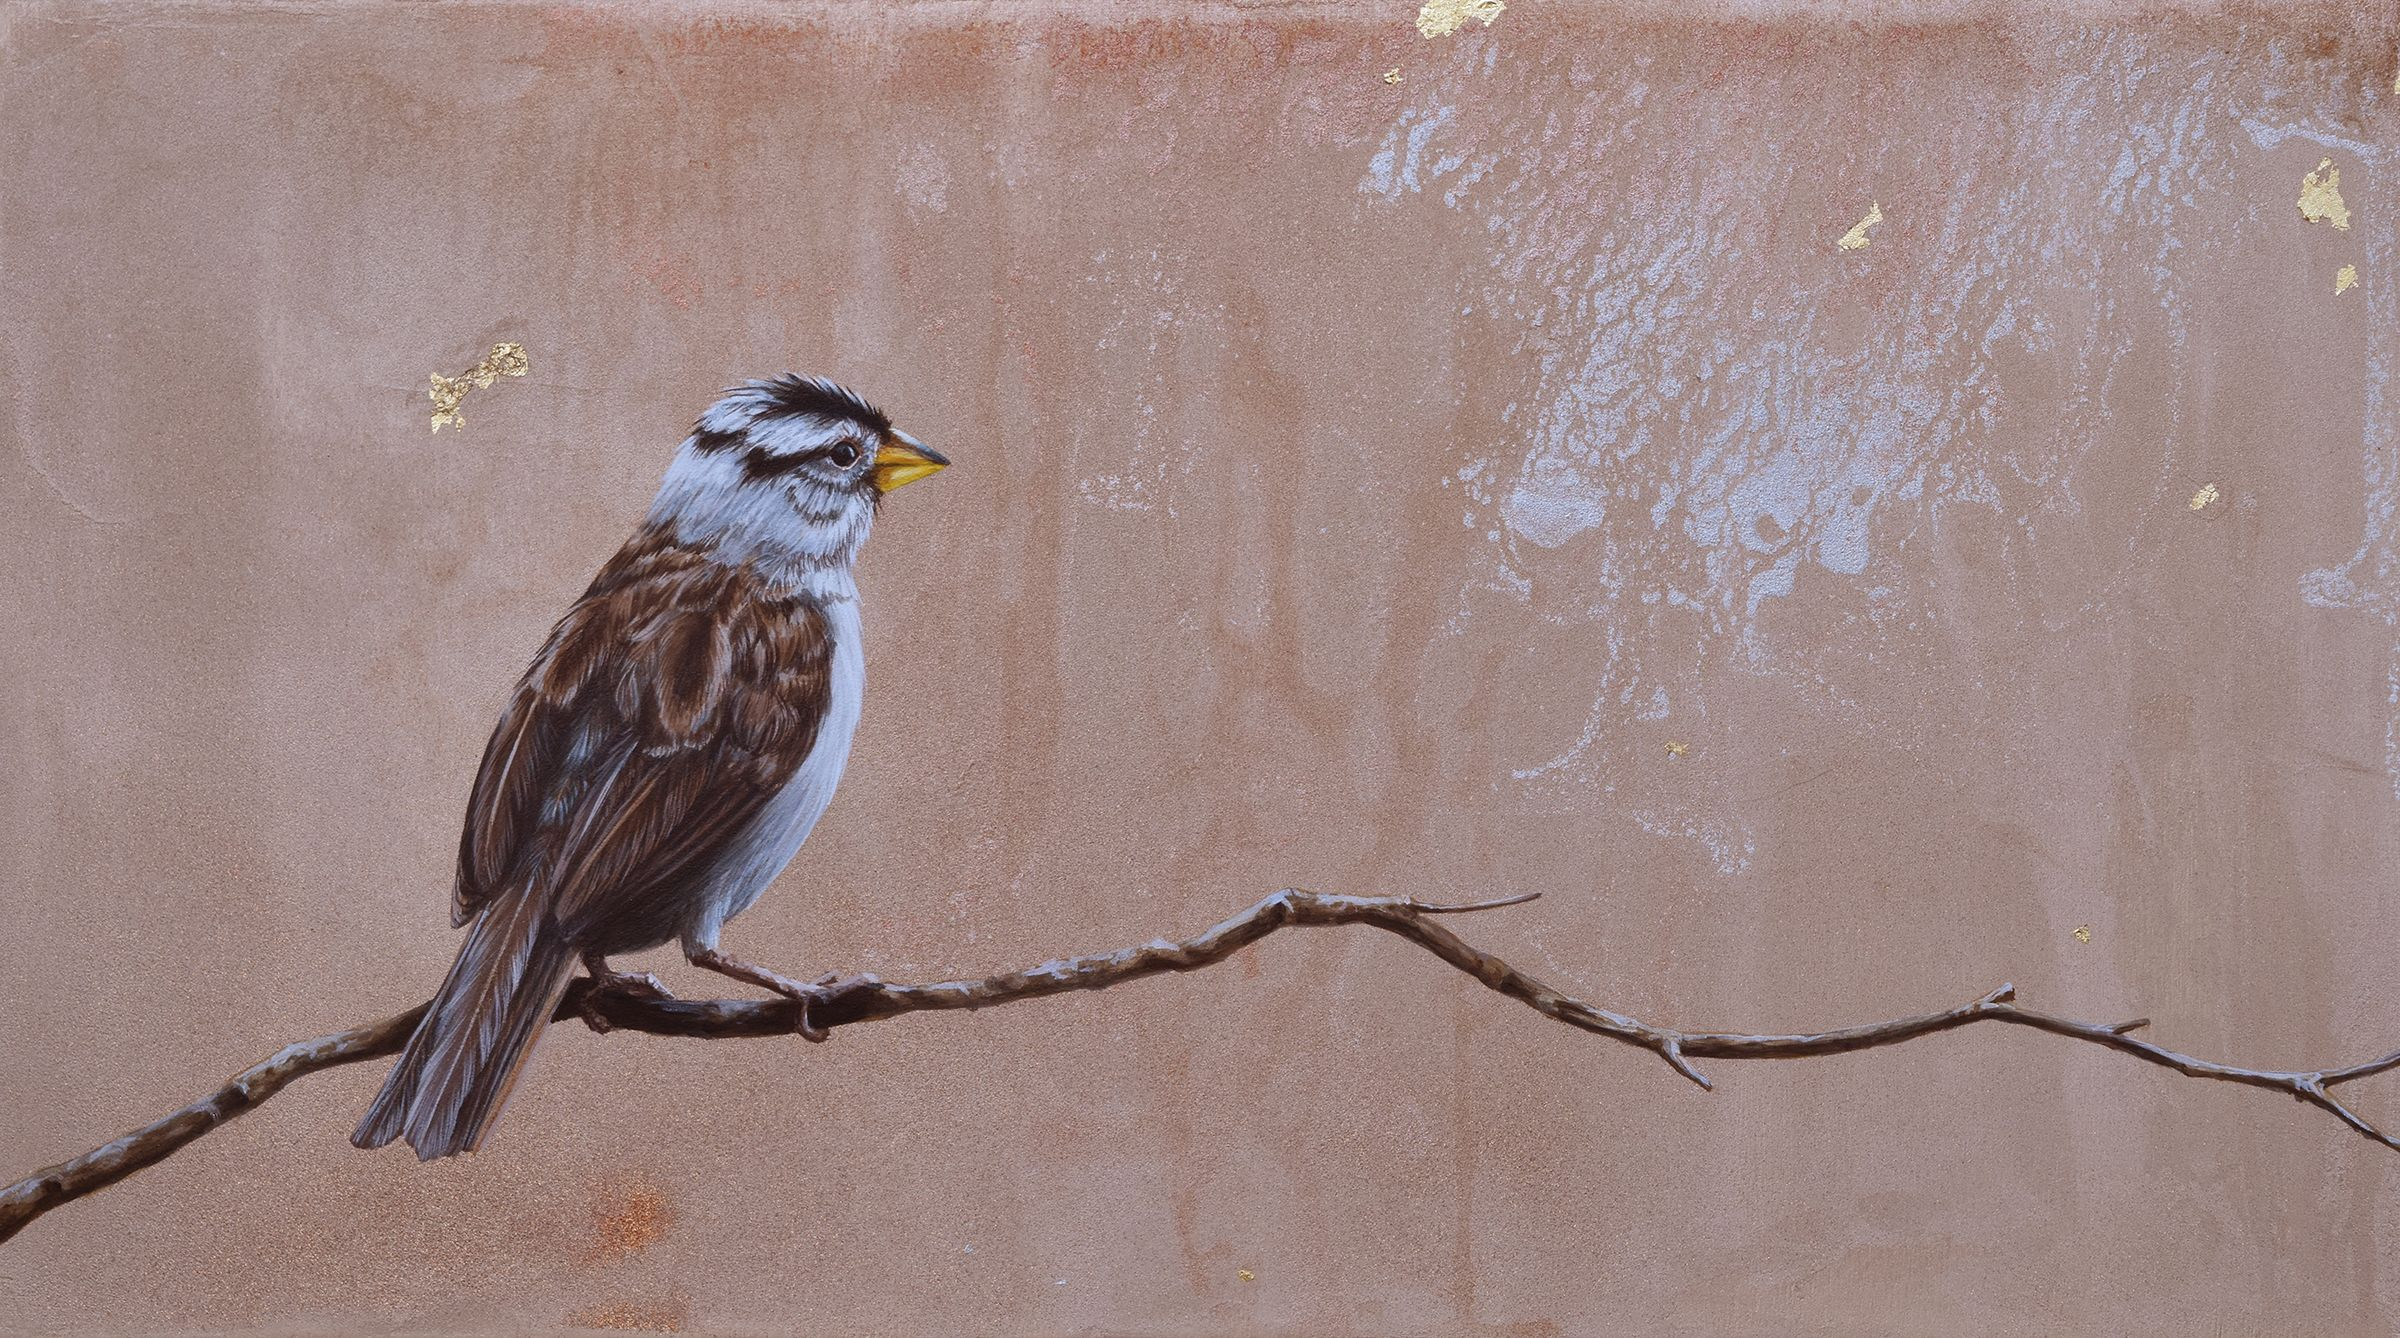 Listening to the Wind, my love had speedily went on a trip and listening to the wind was painted the same day, this sparrow represents looking out ward at all that is happening out in the world, depicted in gilding, ink and metallic glazes, feathers a bit ruffled waiting to hear from him.